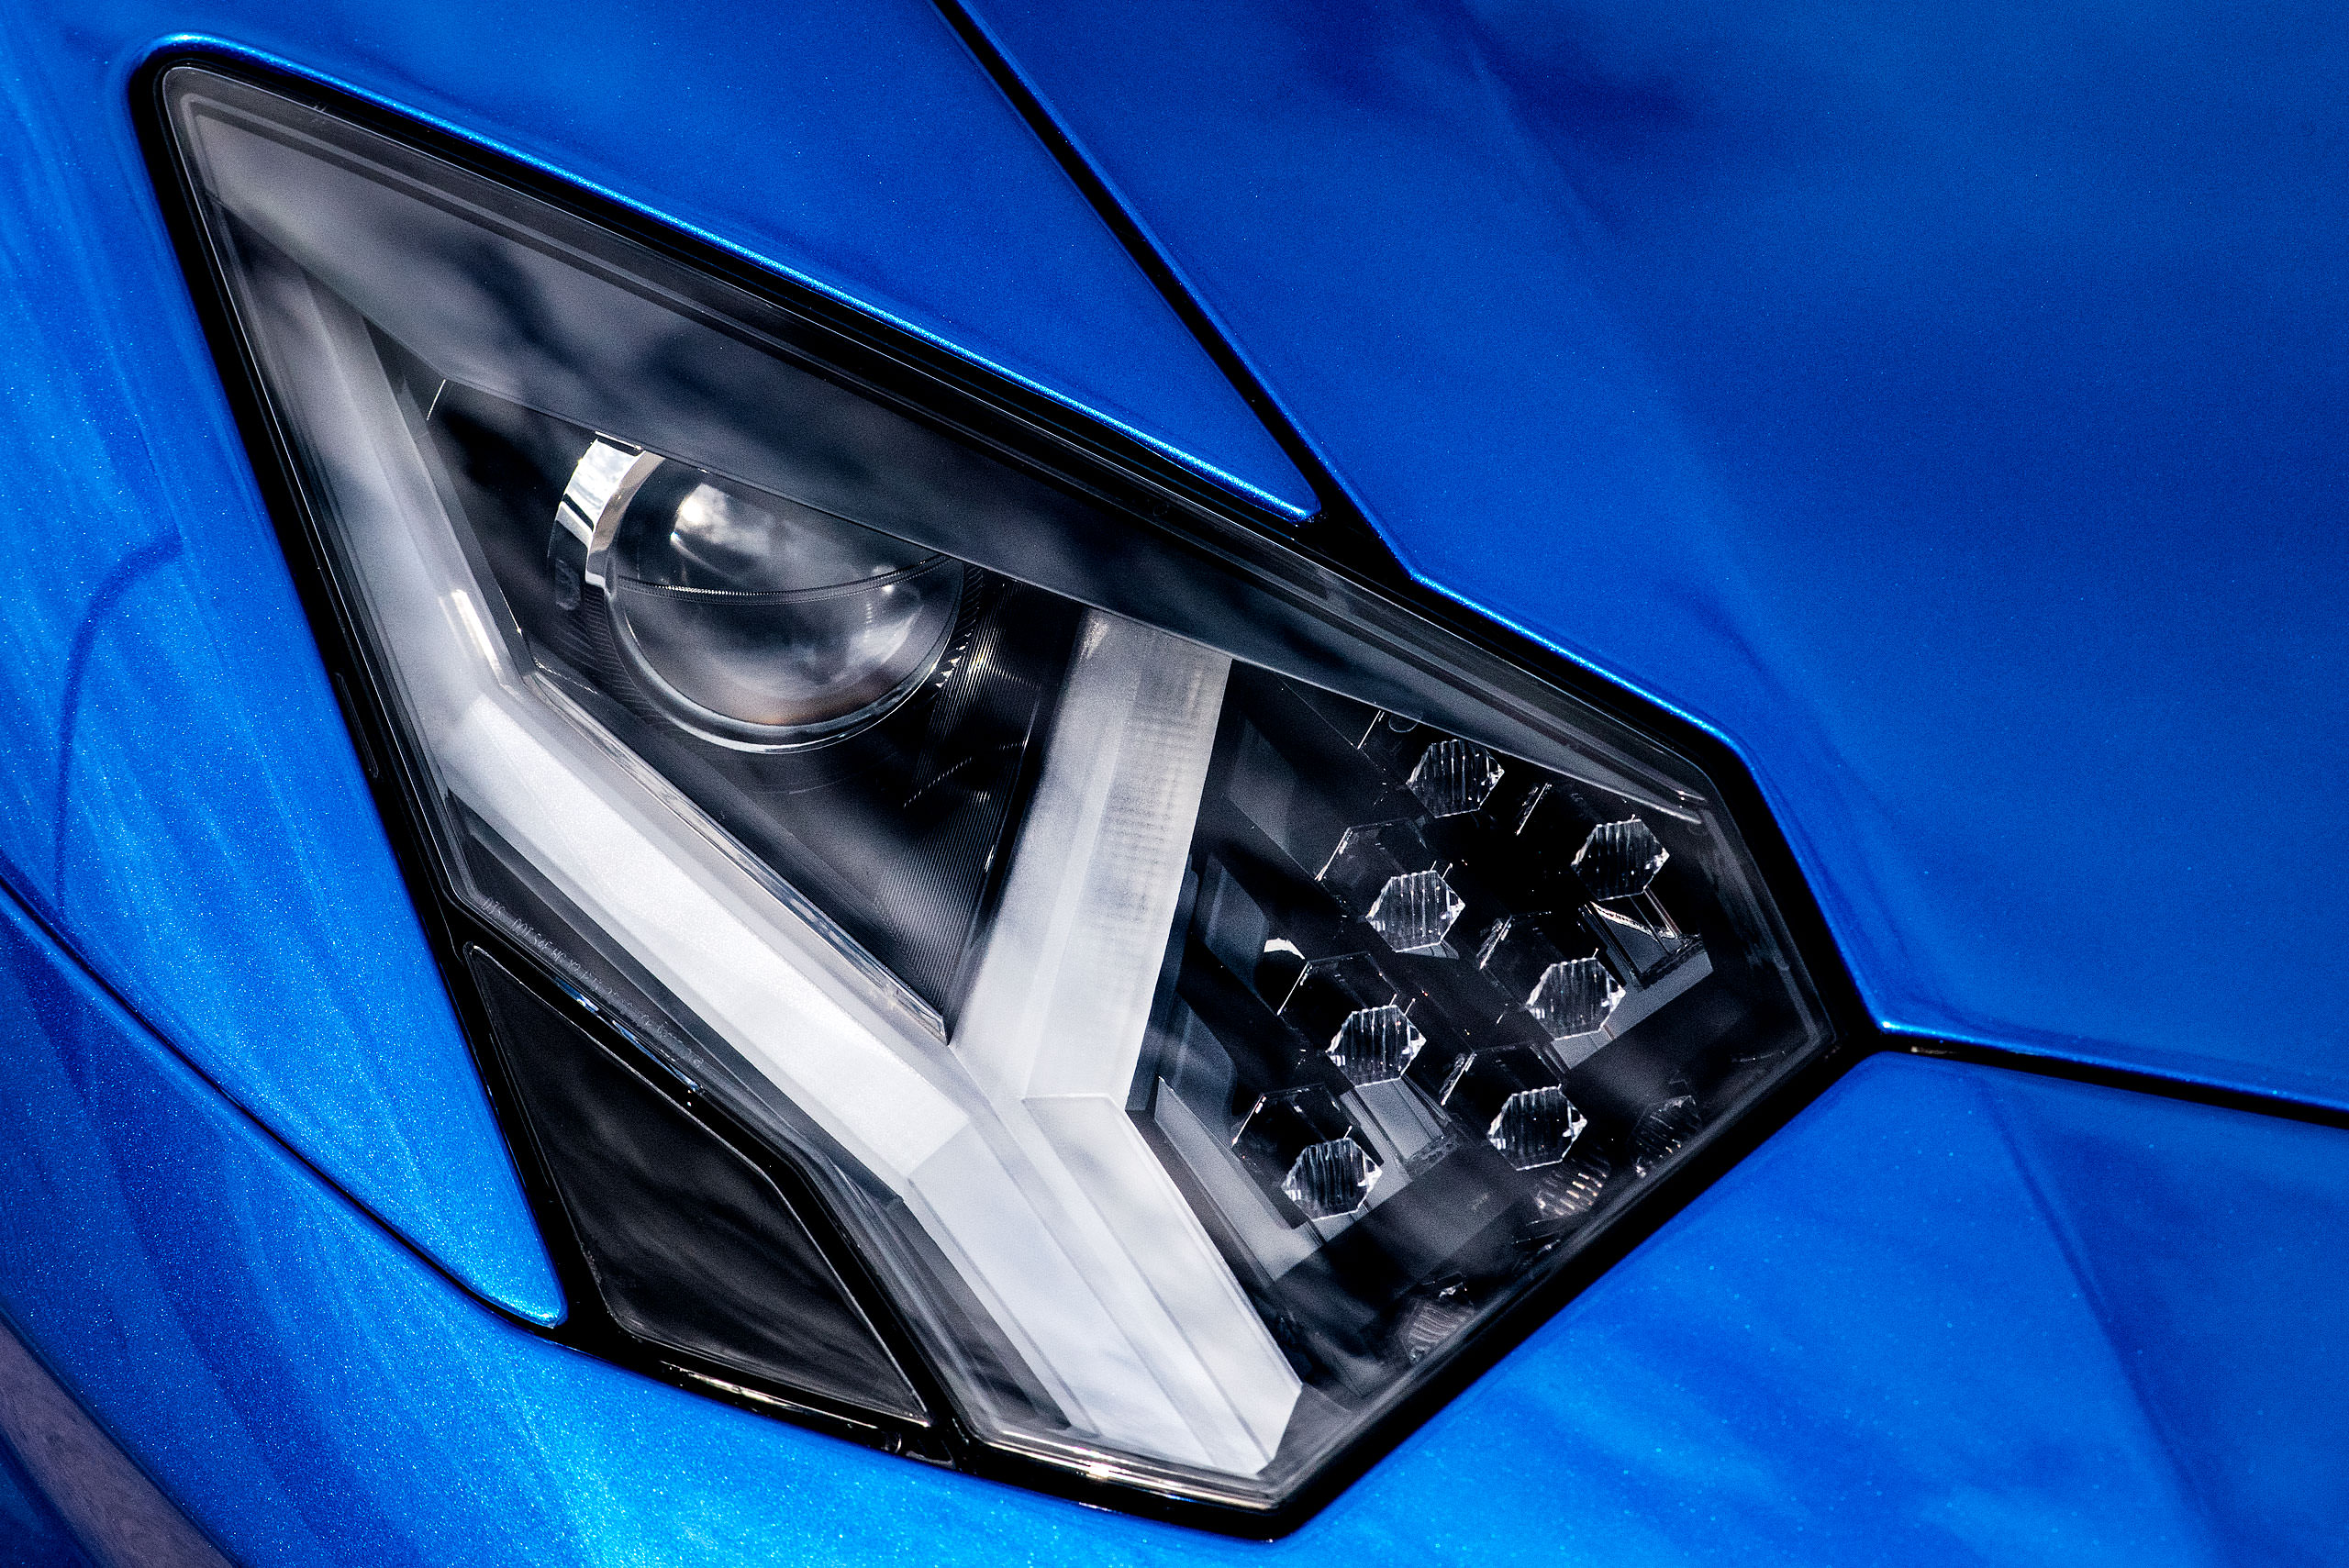 metallic blue Lamborghini aventador close up photograph of the headlight